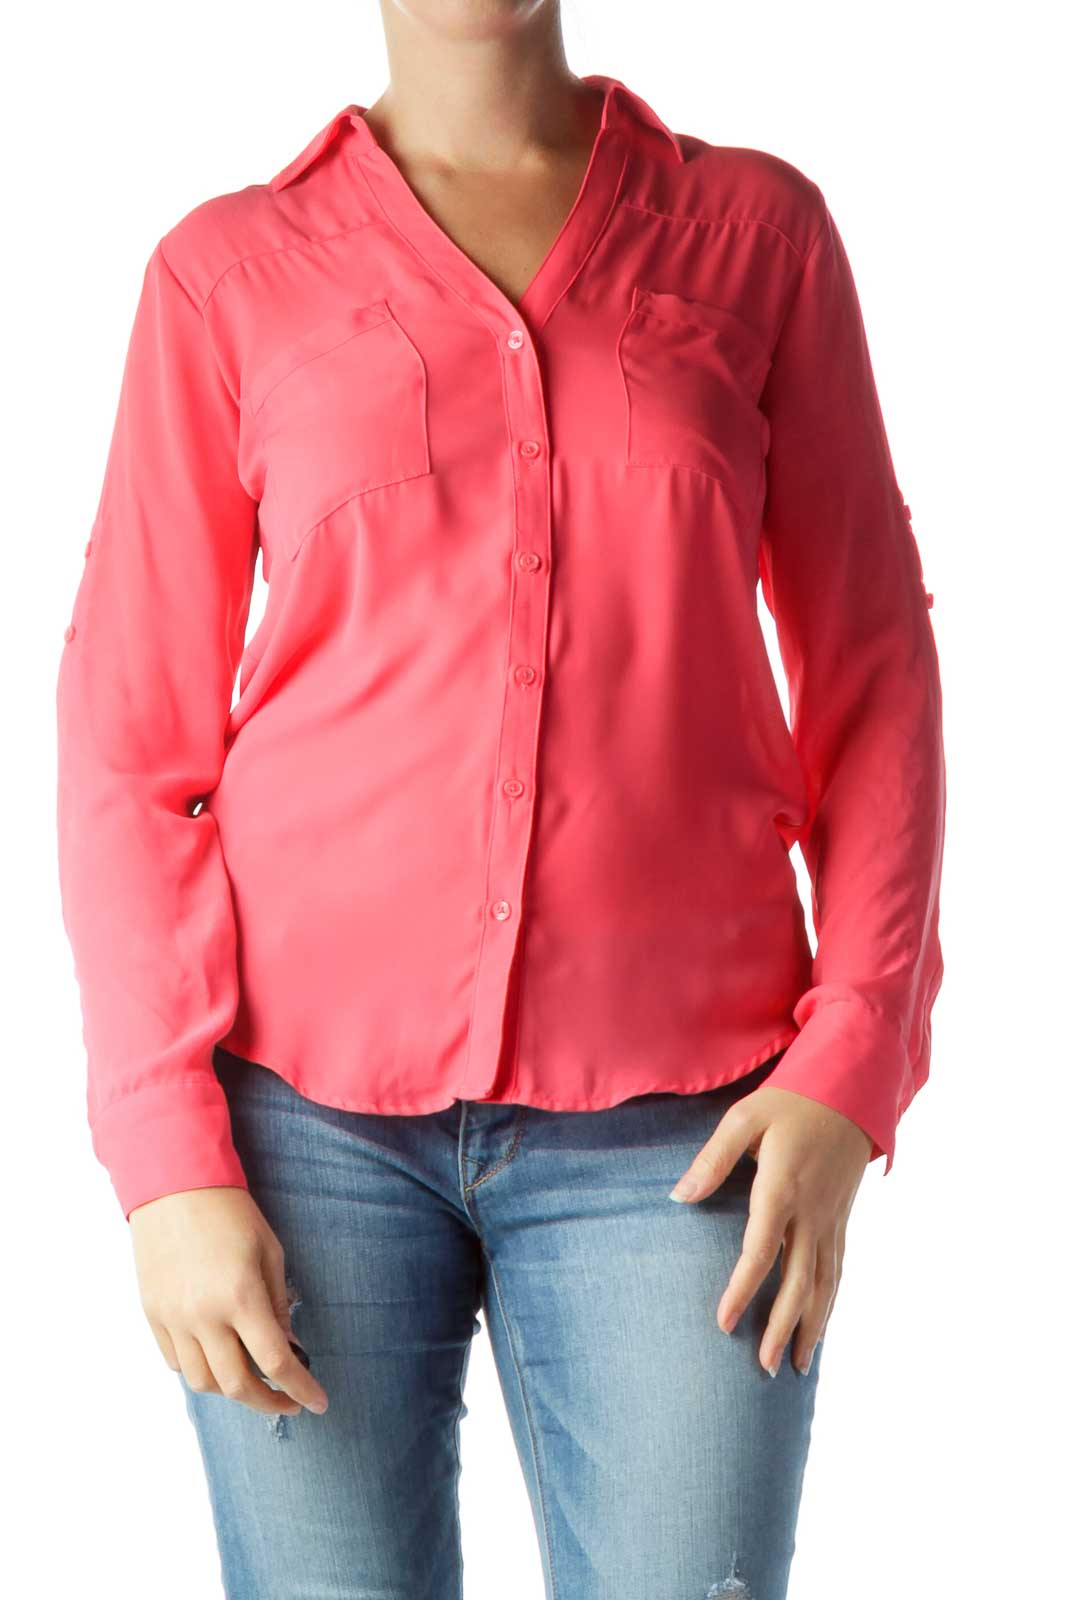 Pink Buttoned Collared Shirt